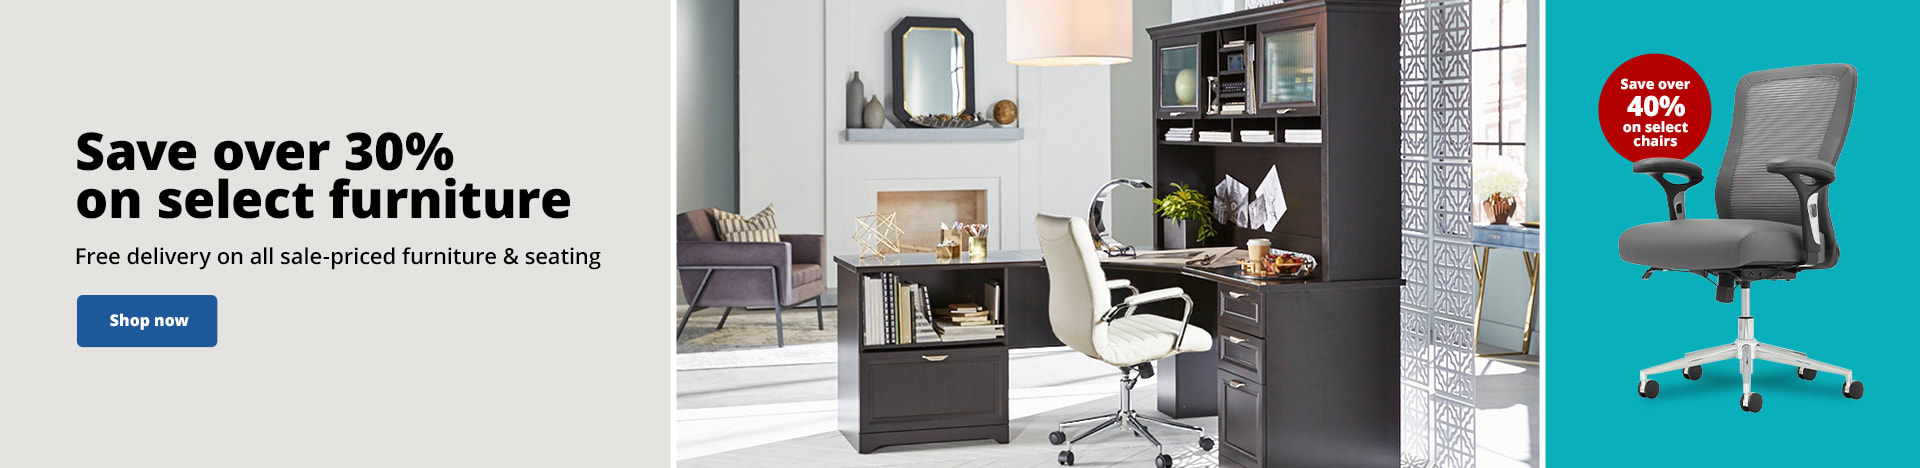 Save over 30% on select furniture. Free delivery on all sale-priced furniture & seating. Save over 40% on select chairs